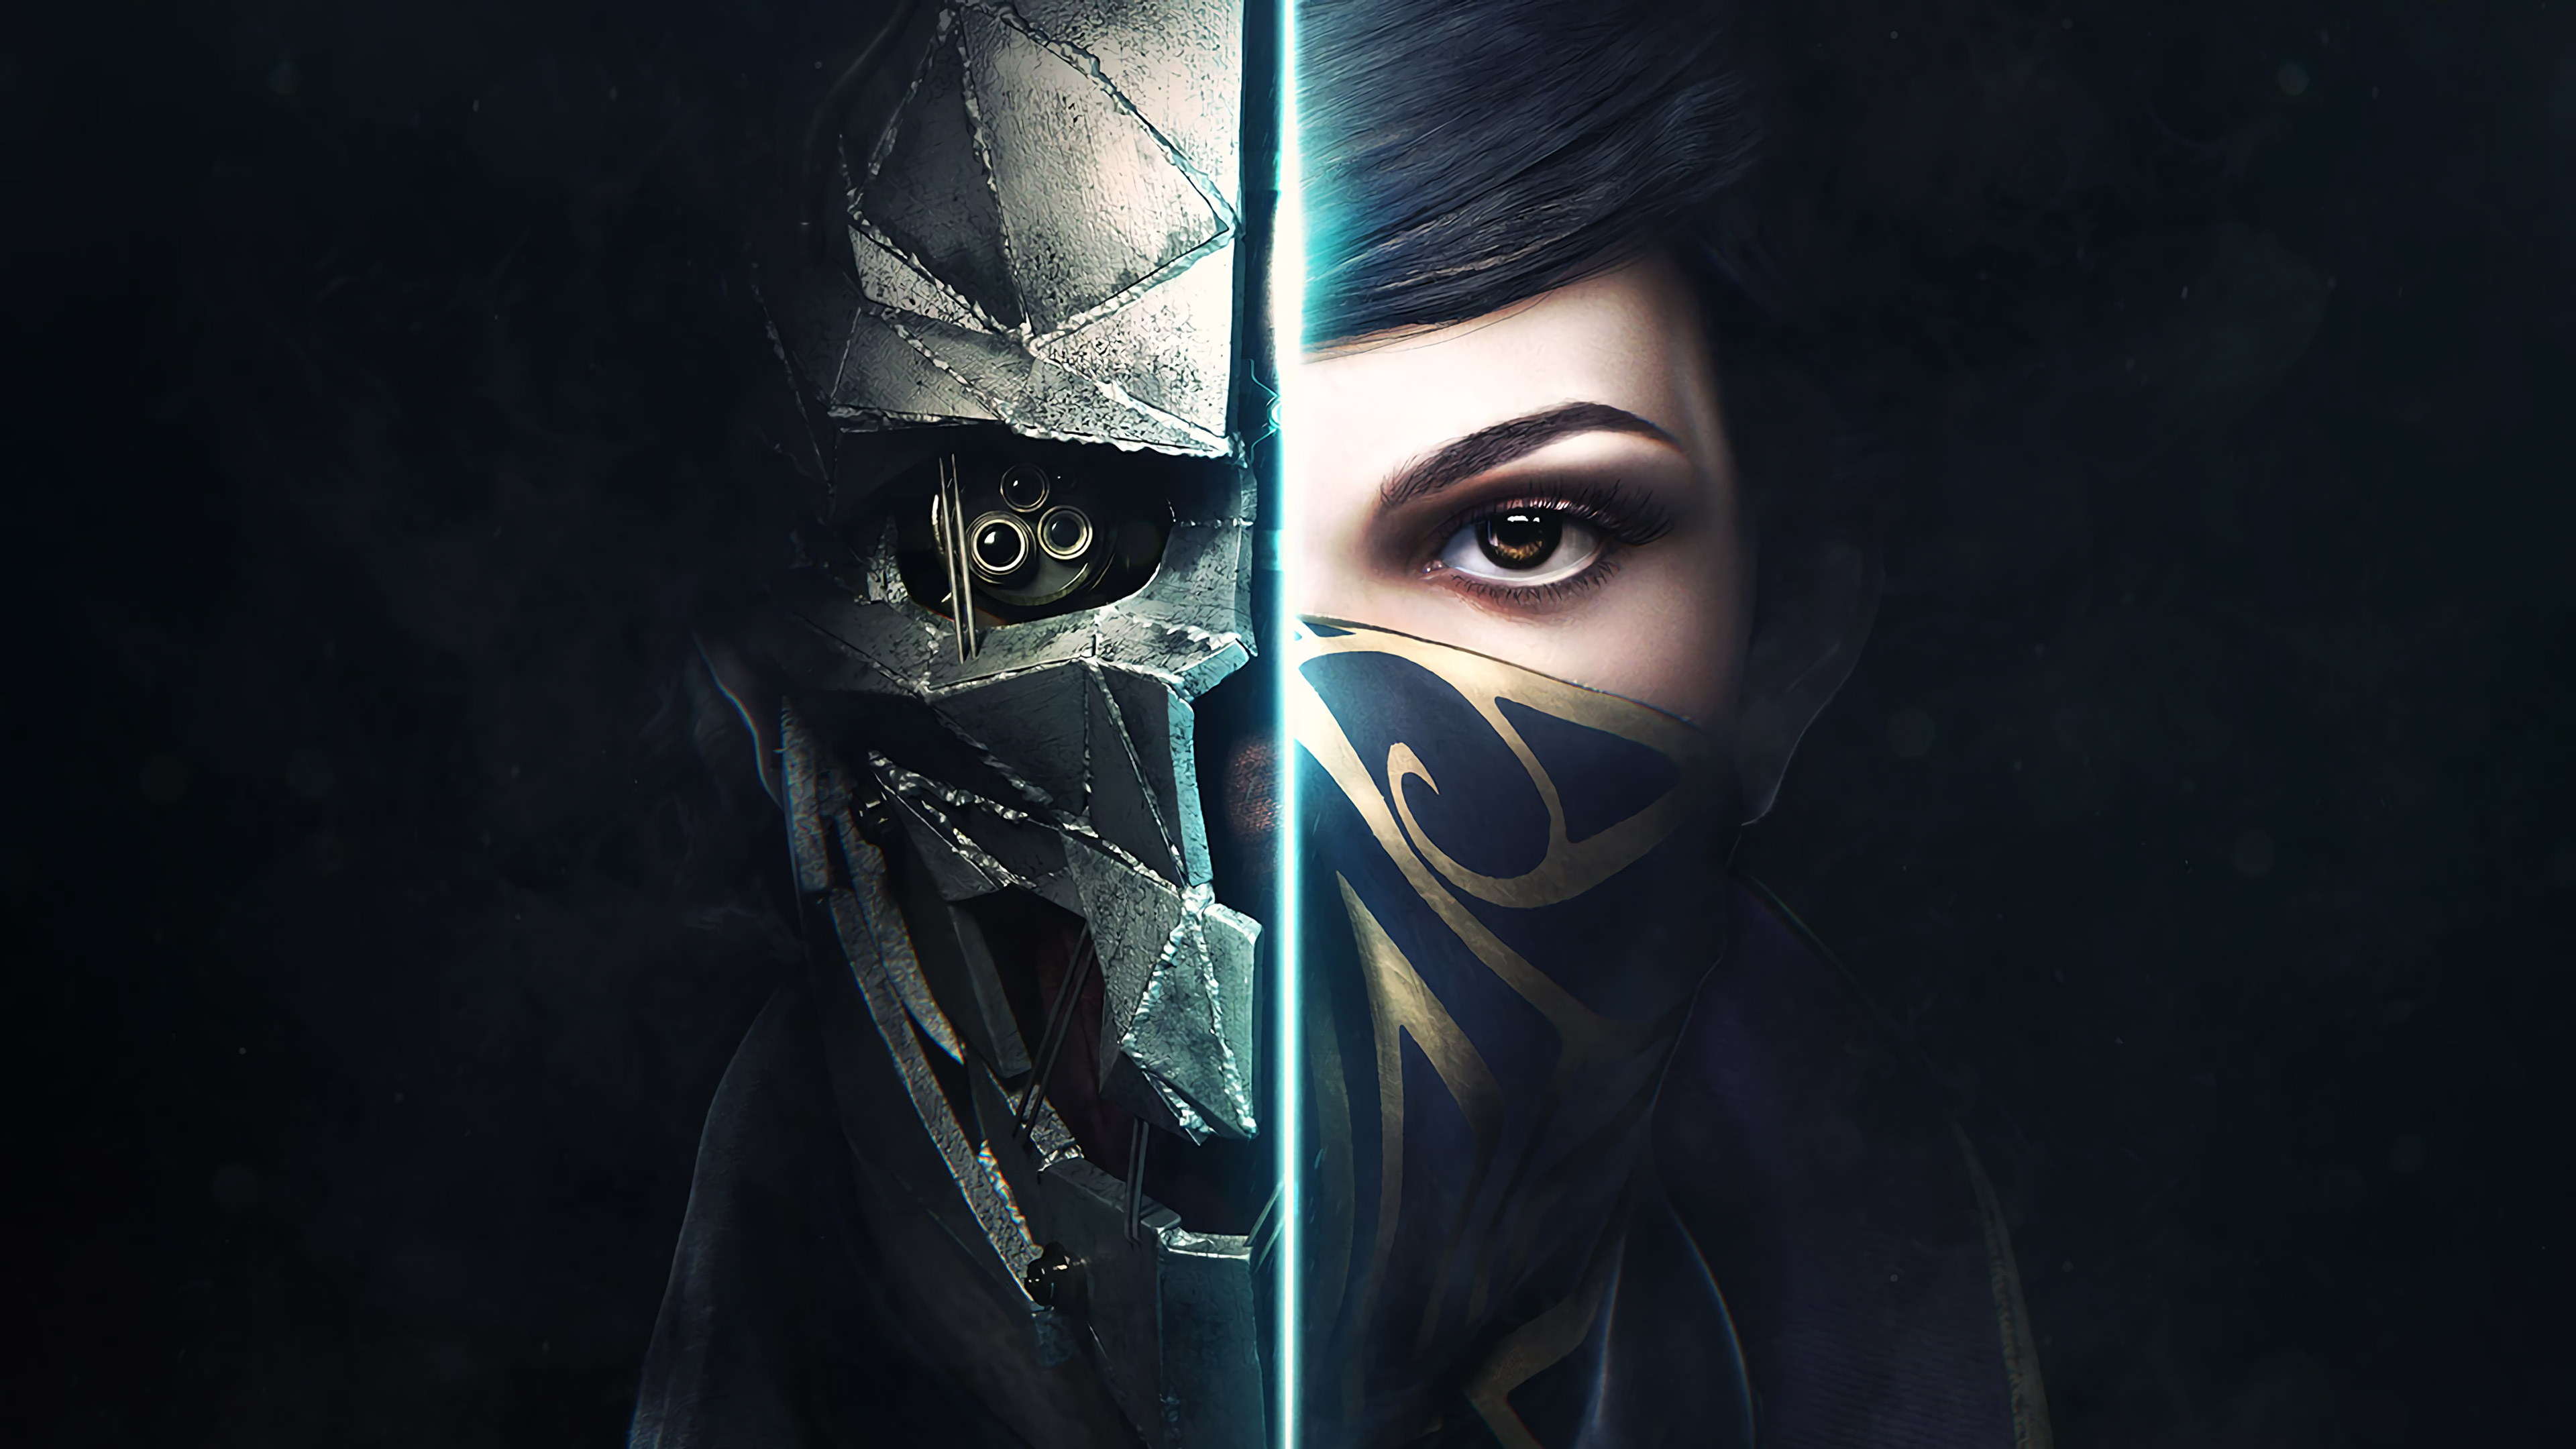 2048x1152 dishonored 2 4k game 2048x1152 resolution hd 4k - 4k wallpapers games ...